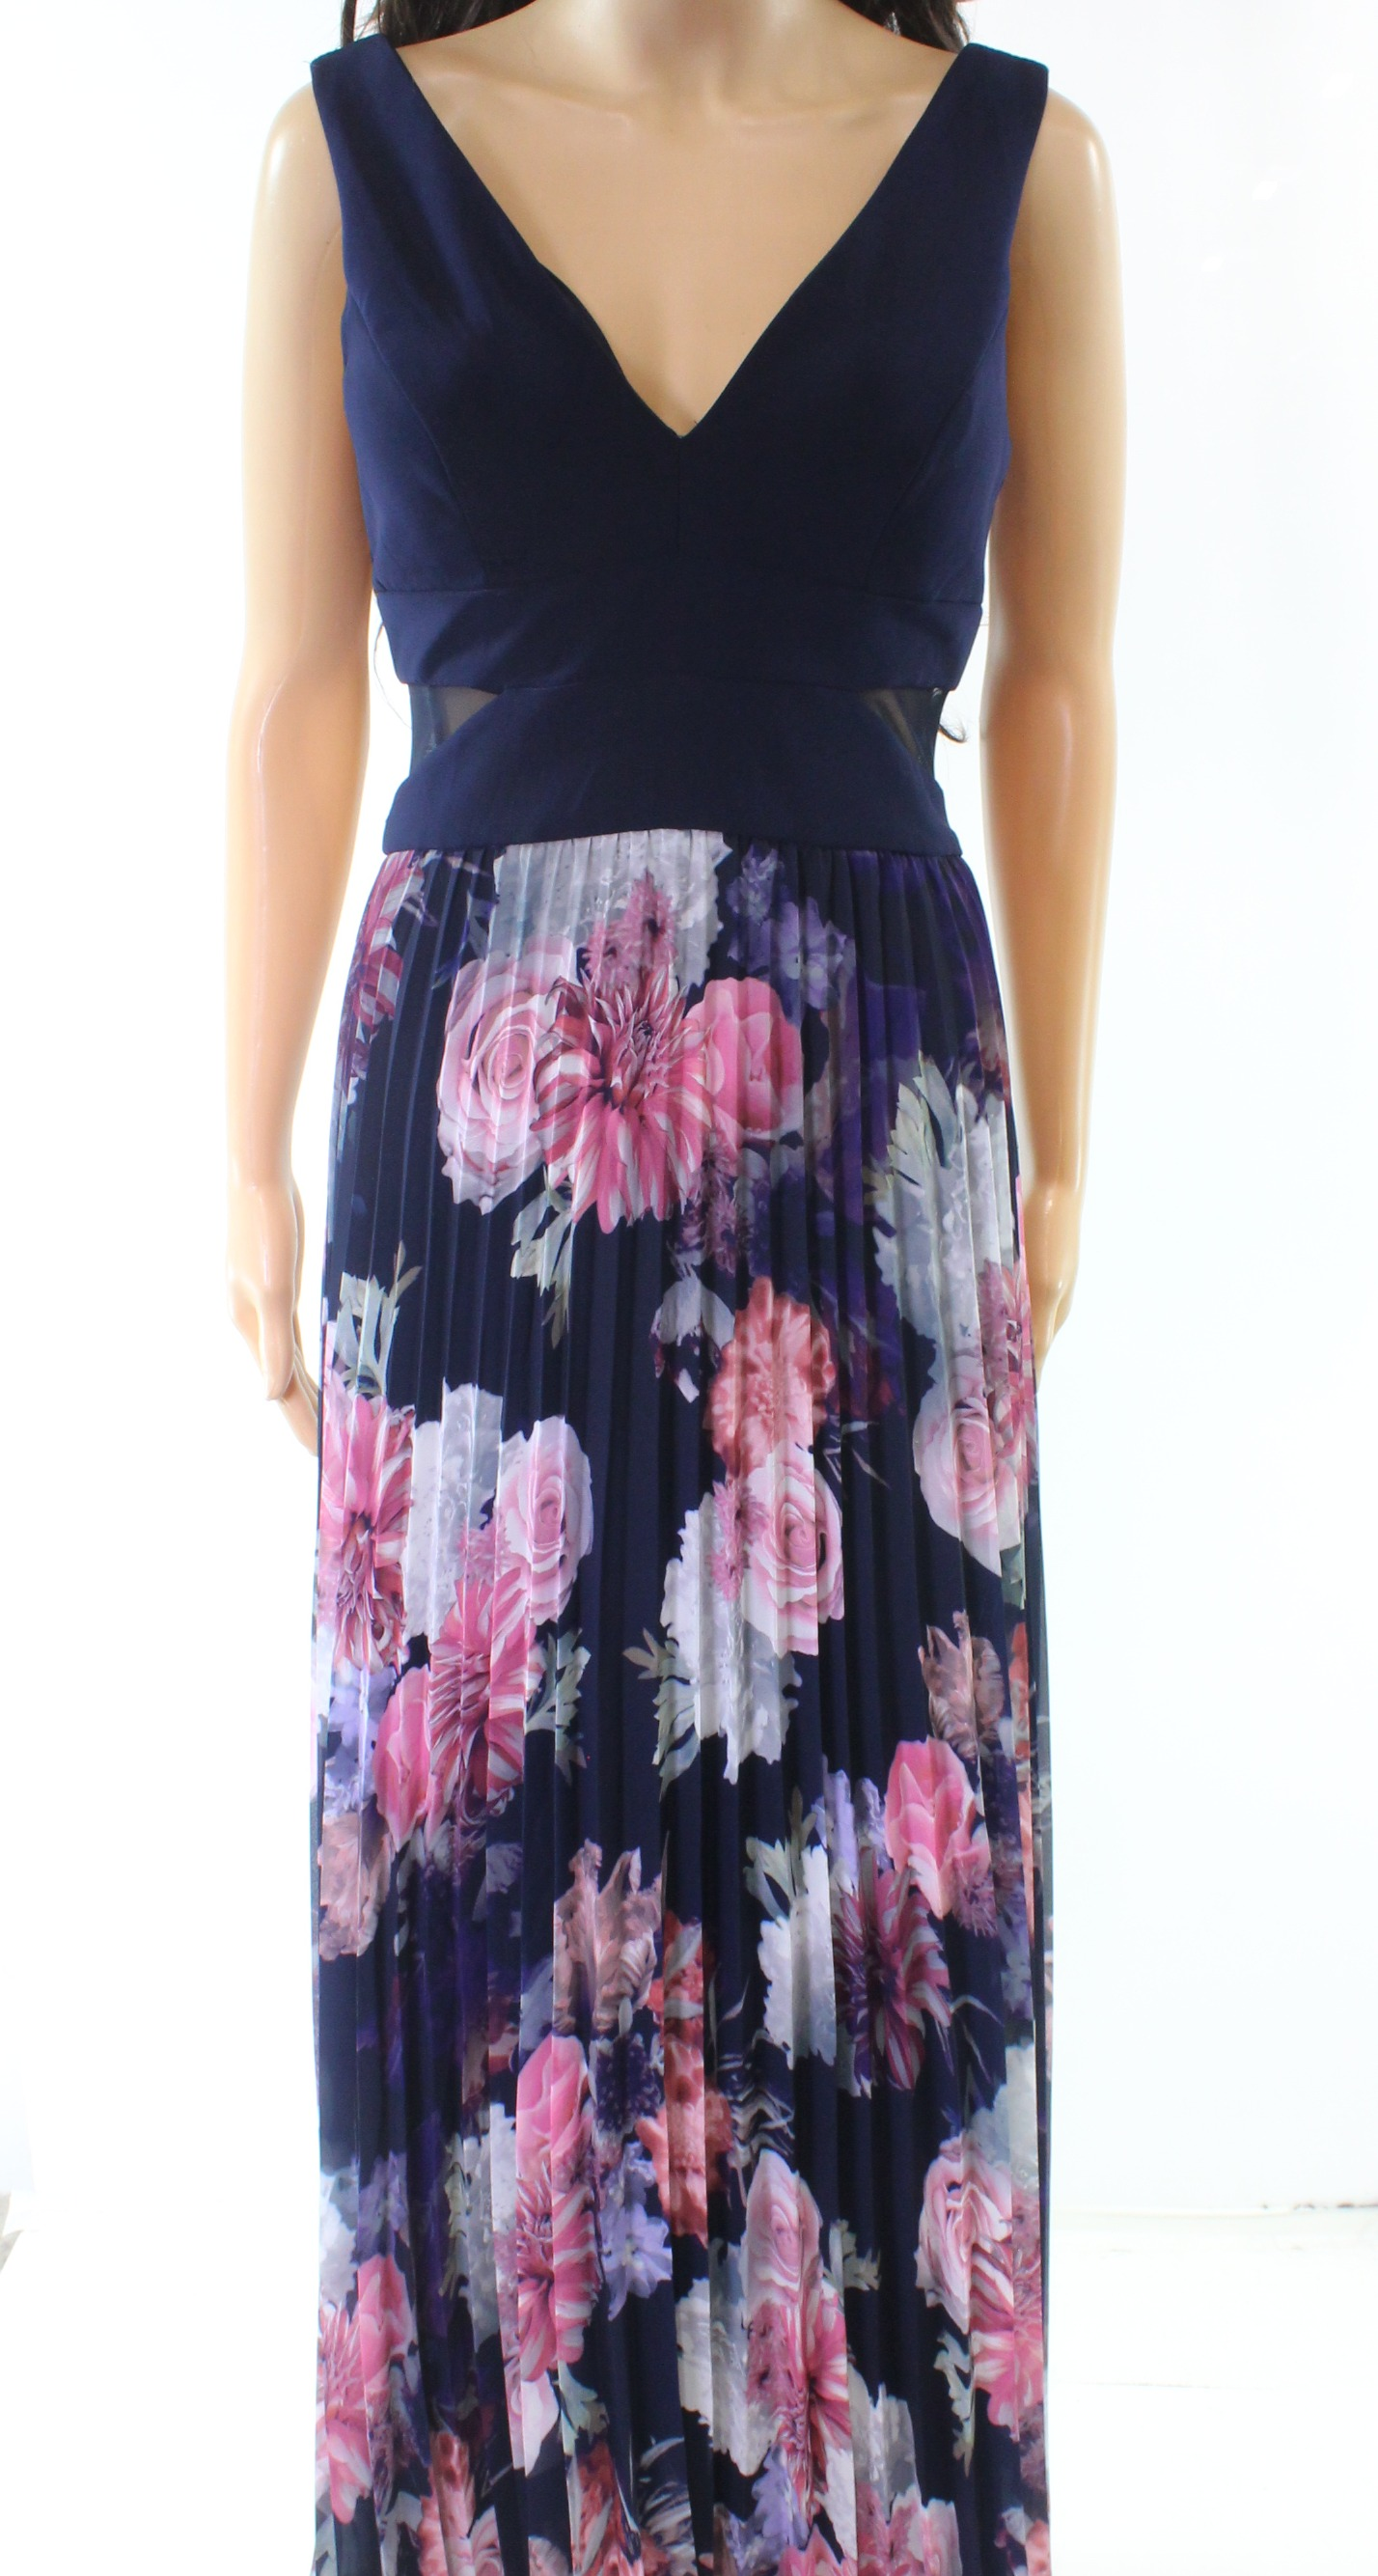 6eb51fe6 We have more Xscape in Size 4 - Click Here Click to see all Womens Dresses  in Size 4